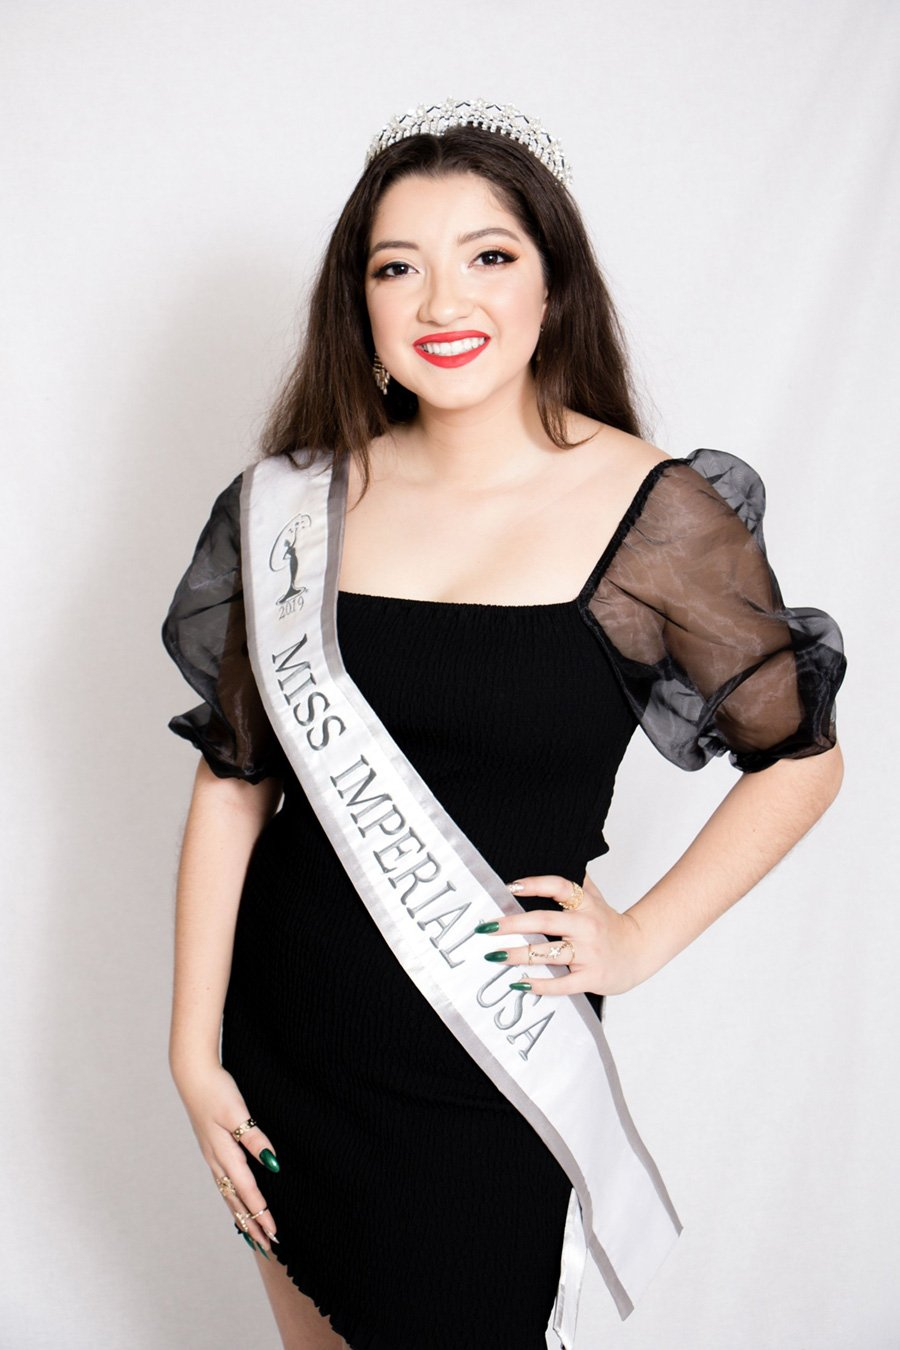 IVC Student Competing in Miss California Pageant